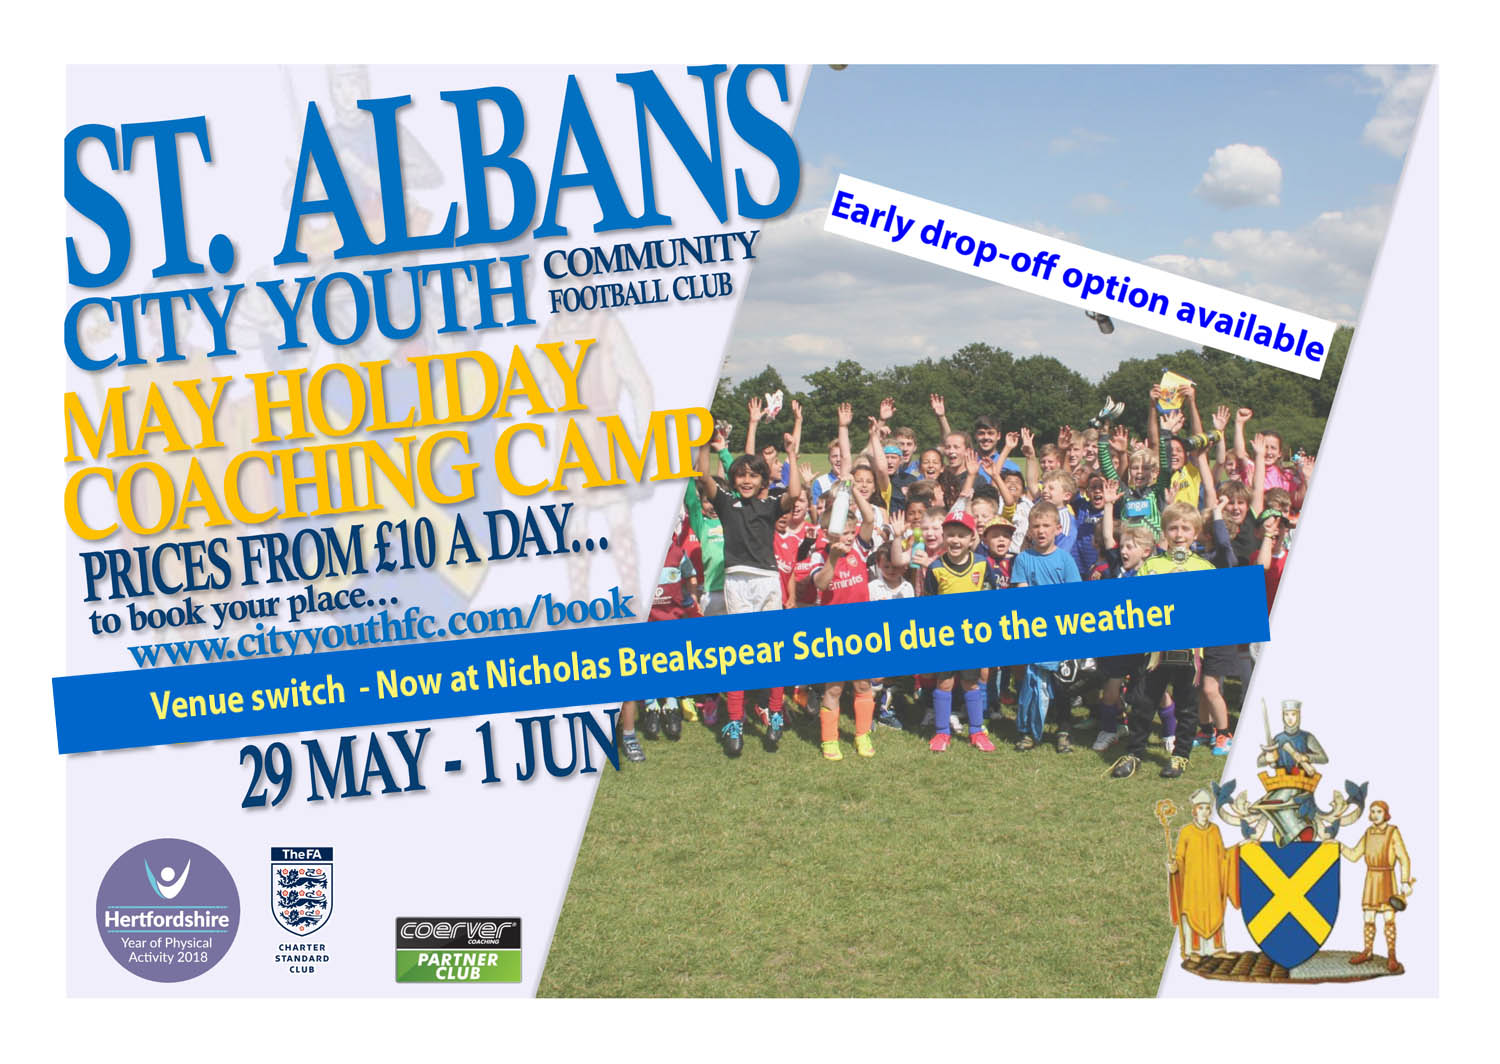 St Albans City Youth FCMay 18 Coaching Camp web1